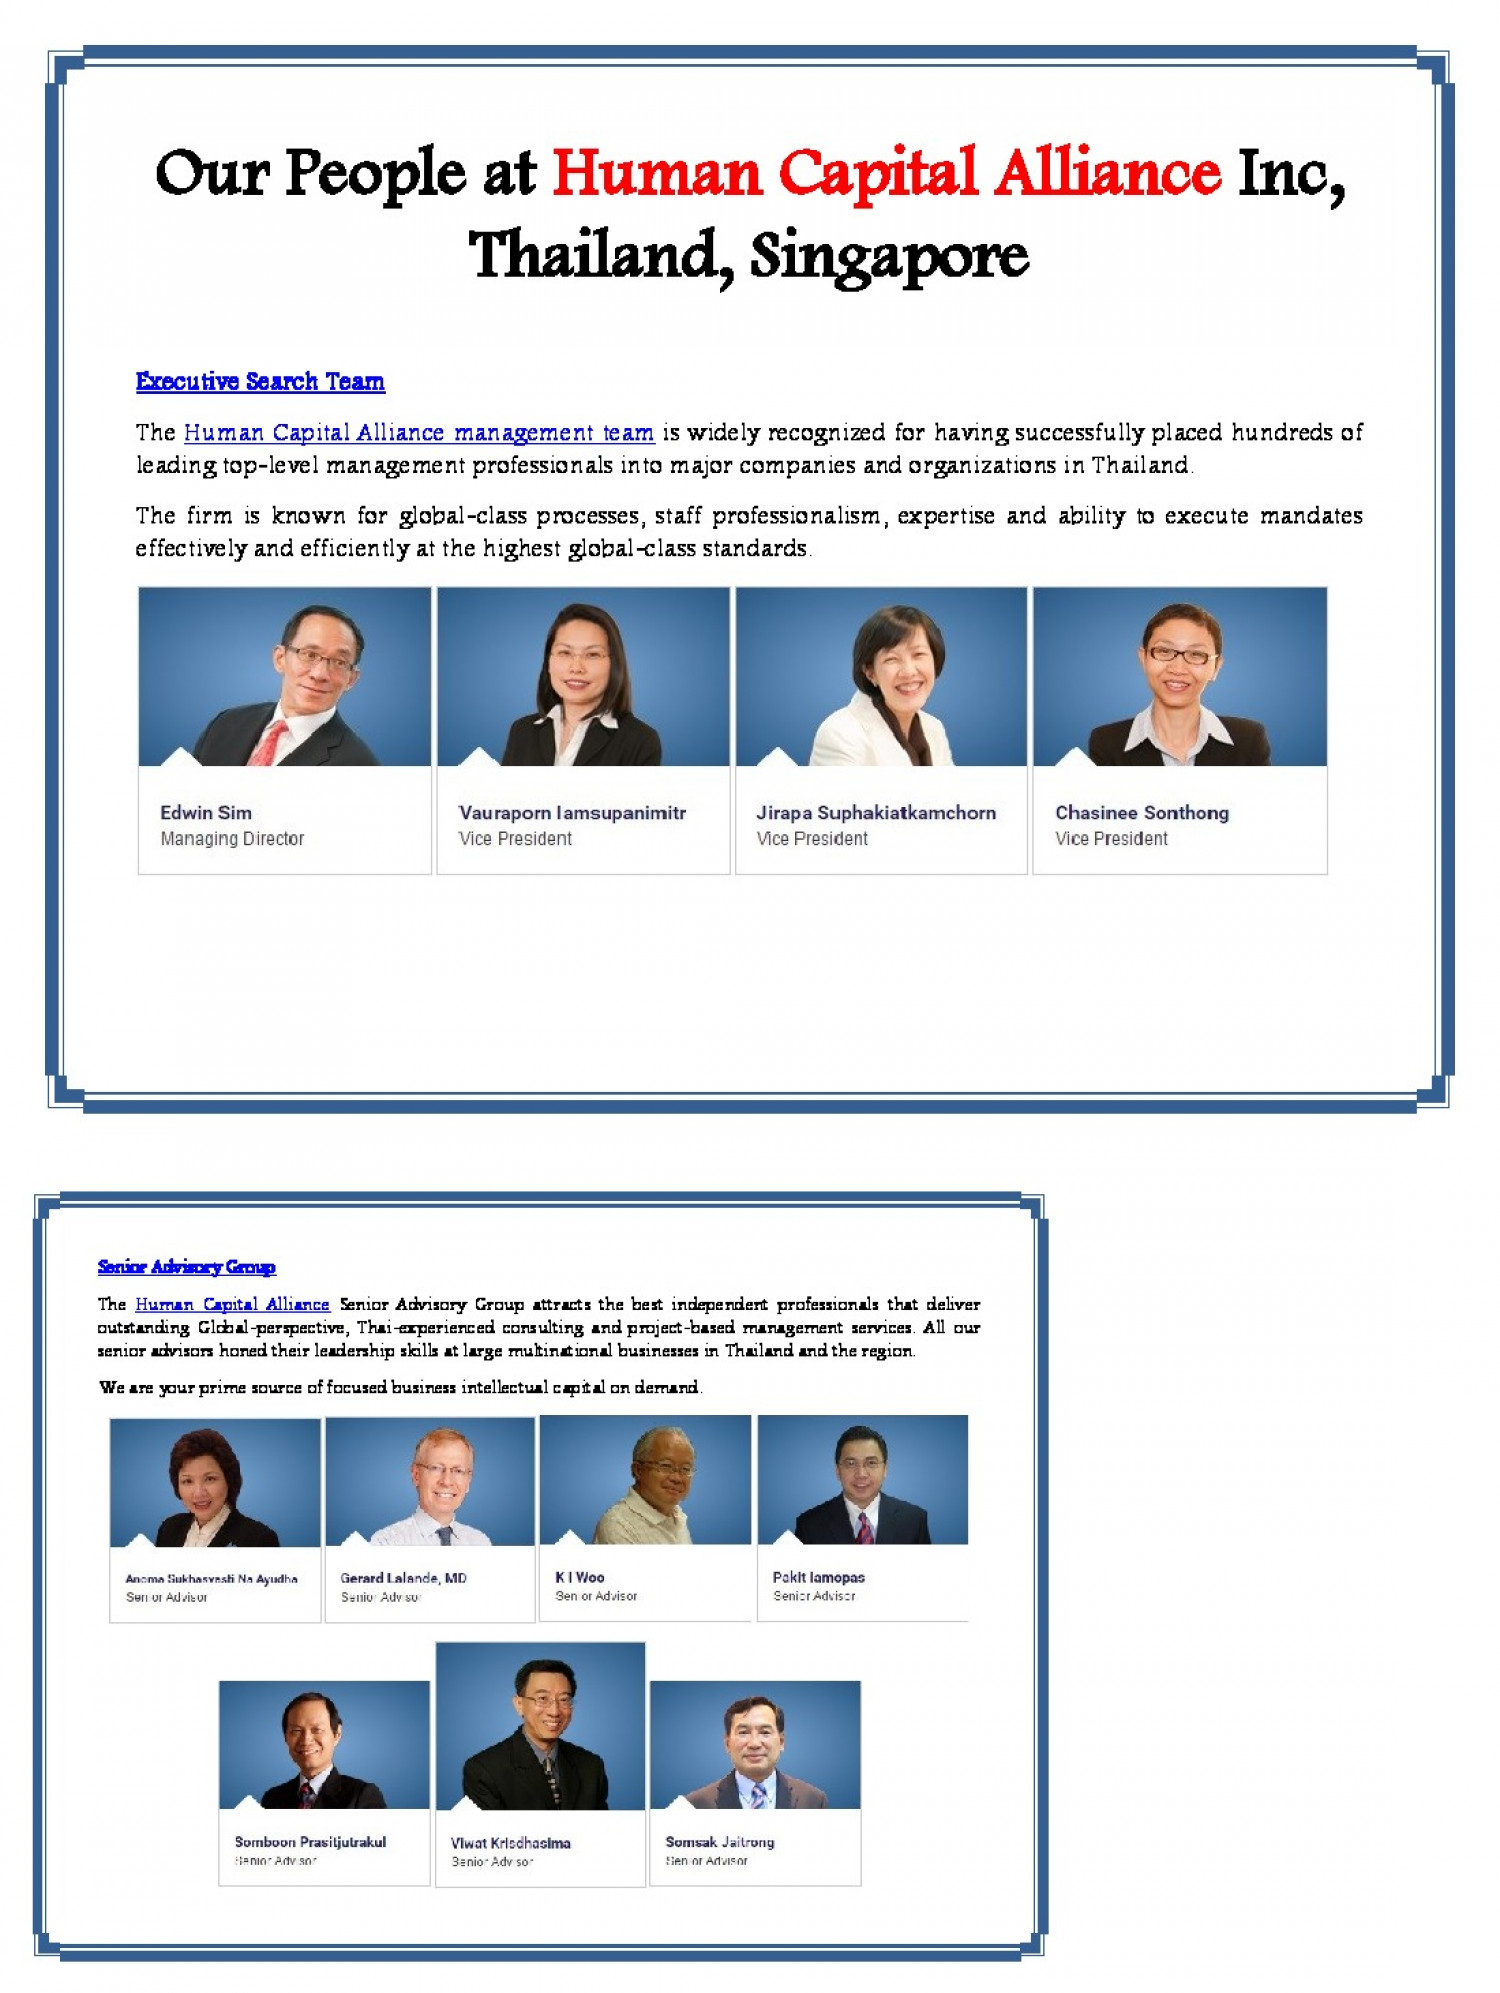 Our People at Human Capital Alliance Inc, Thailand, Singapore Infographic